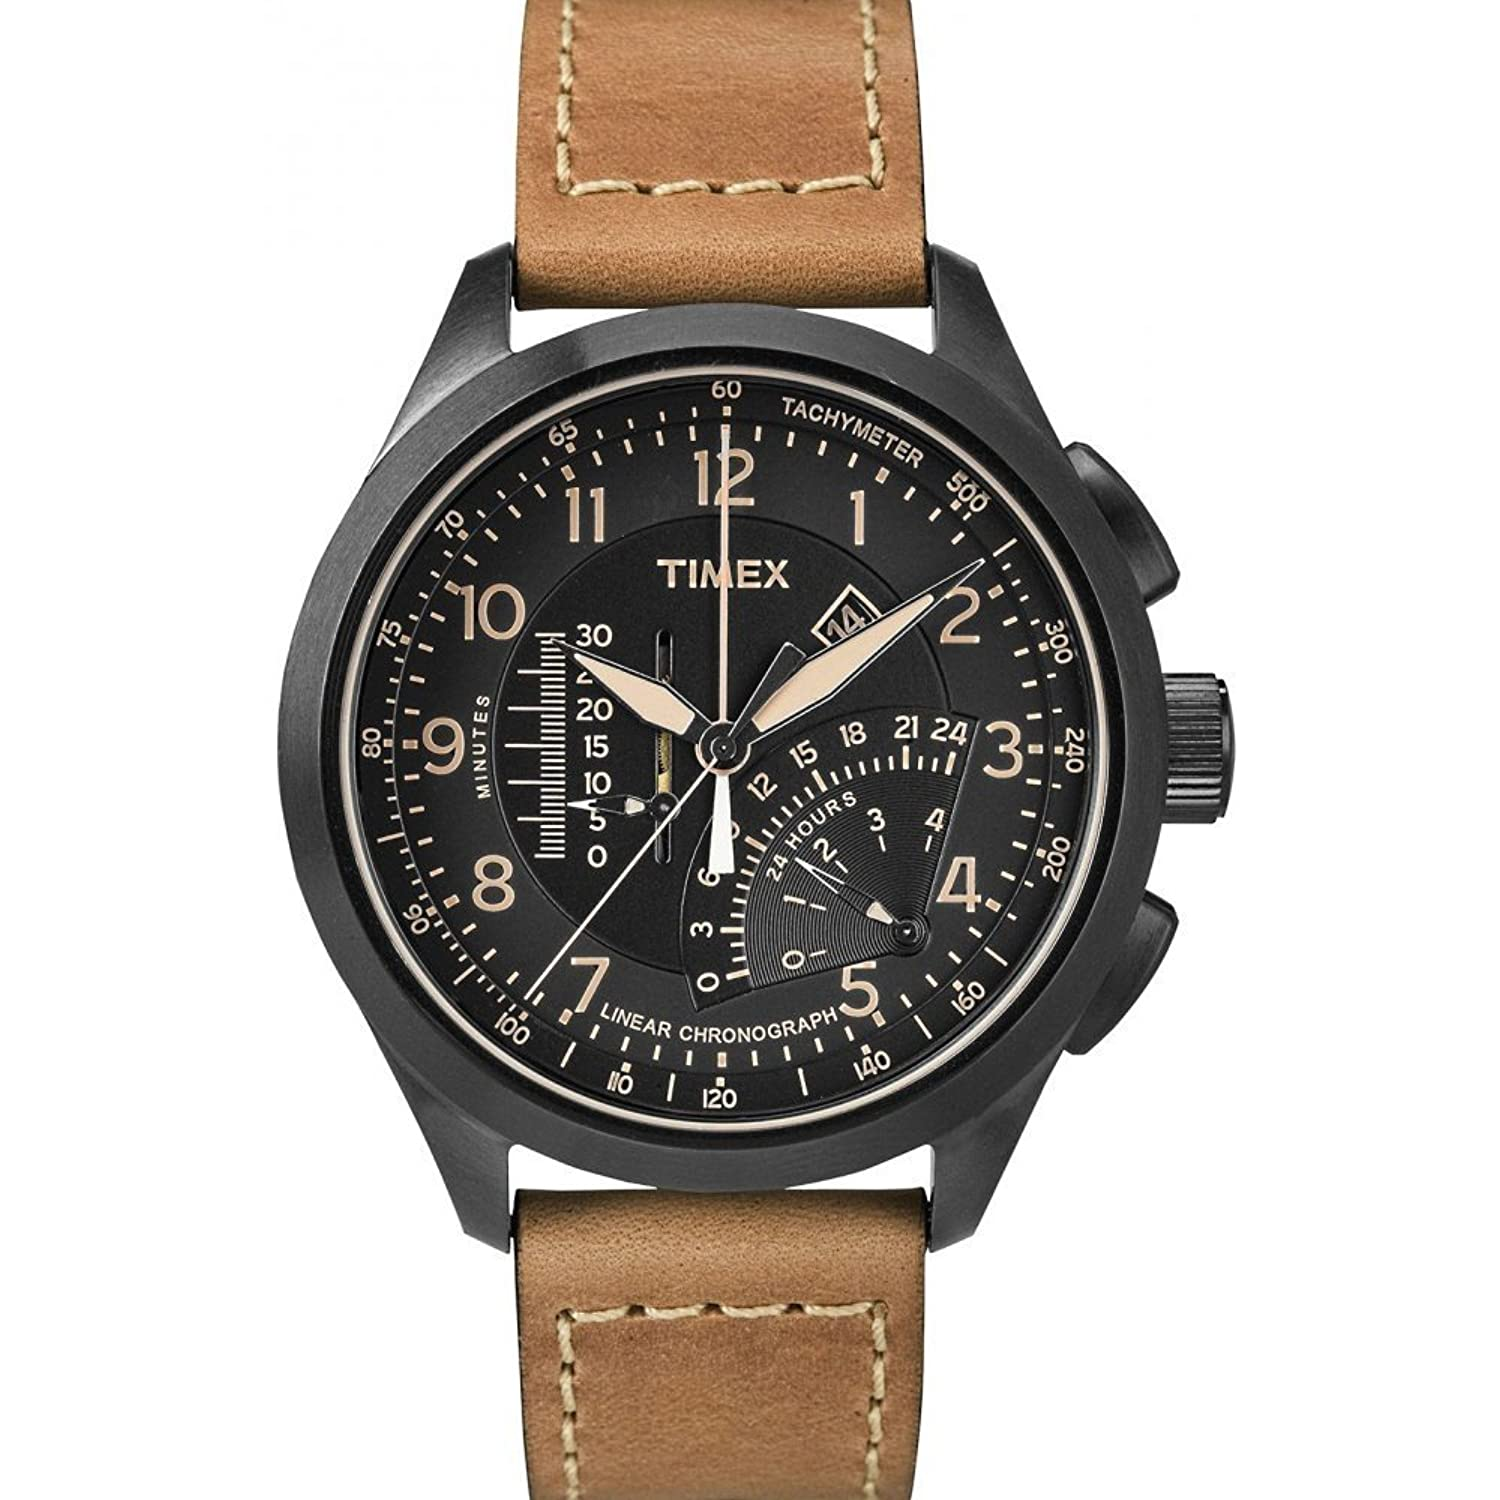 Details about Timex Intelligent Quartz T2P277 Mens Black Tan Linear  Chronograph Watch 85181264789f